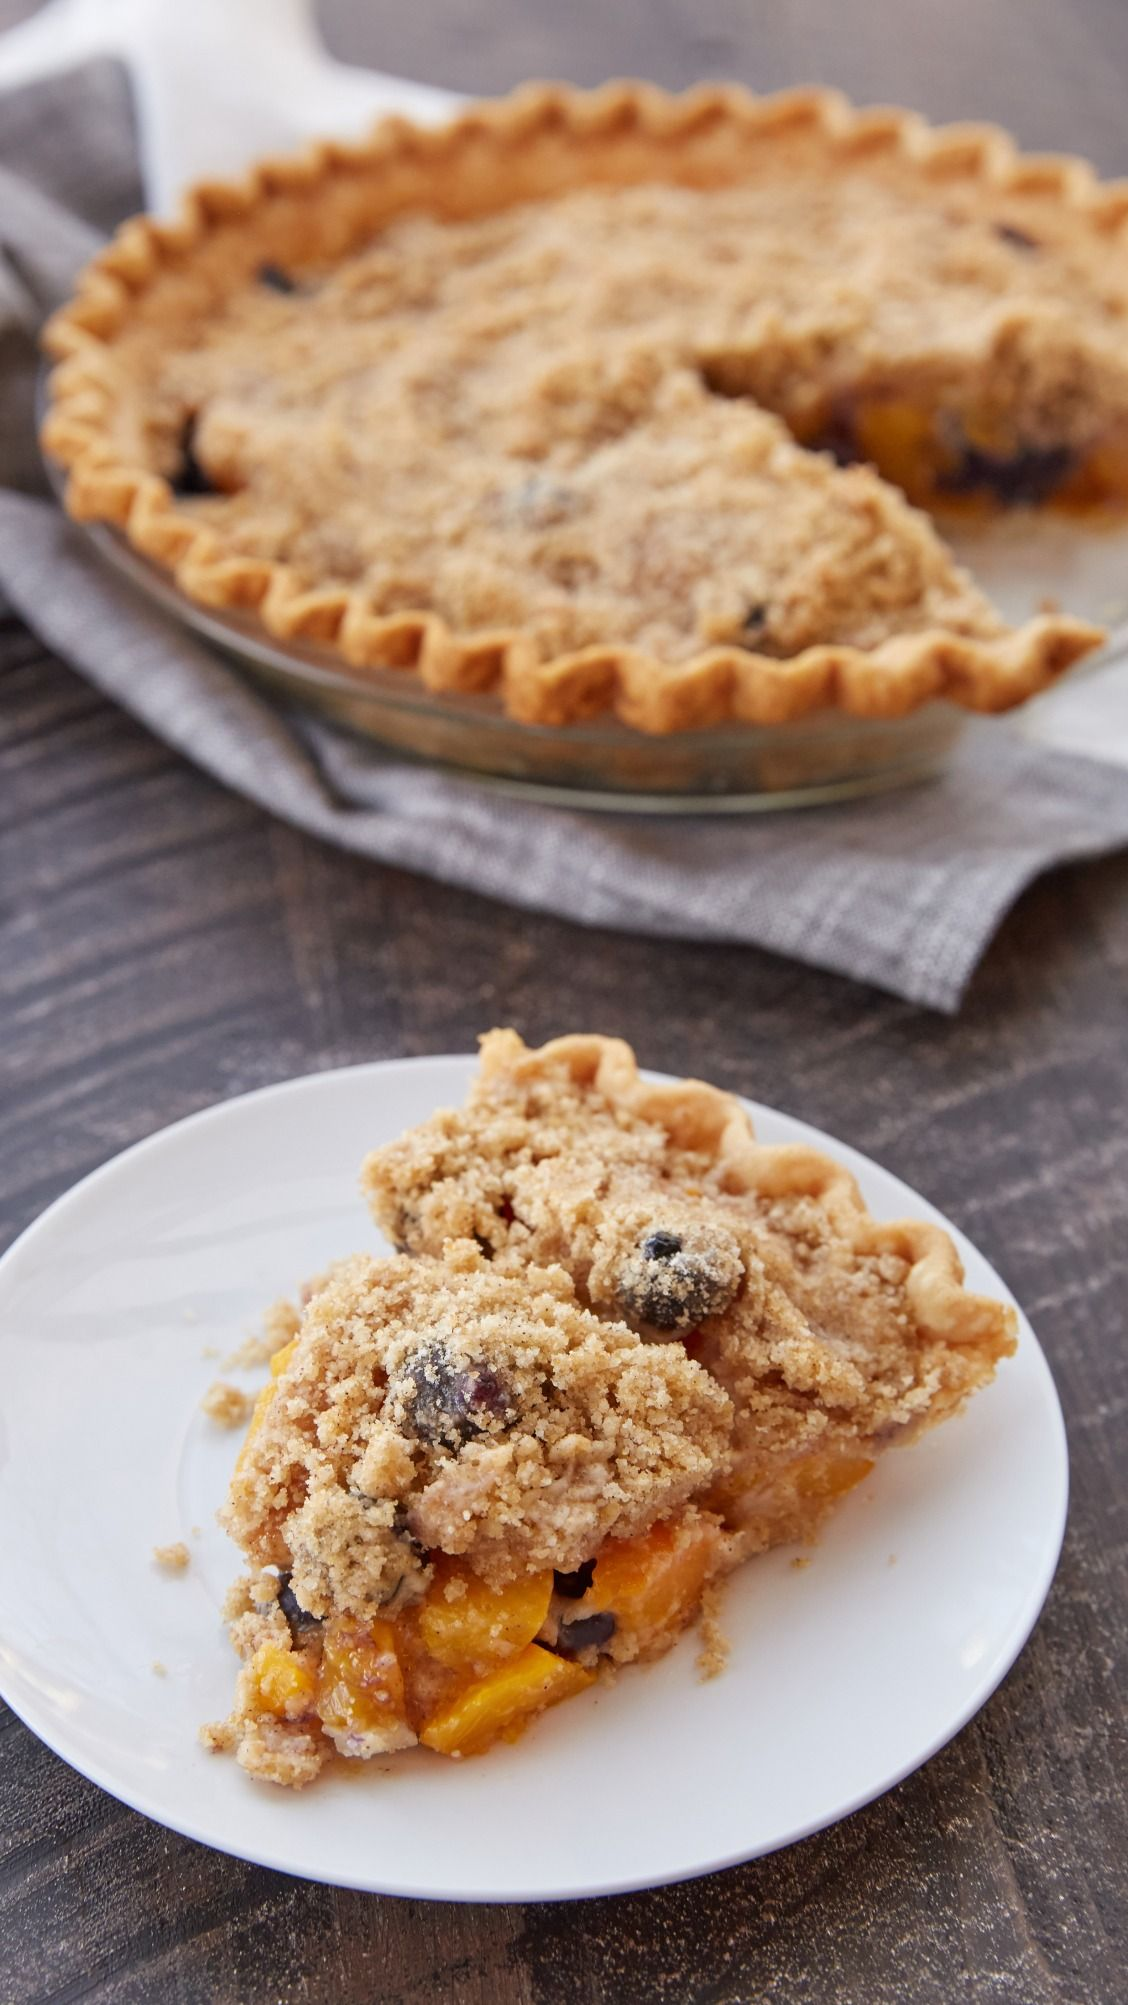 Streusel-Topped Peach-Blueberry Pie Recipe - This delicious pie combines peaches and blueberries for the perfect summer dessert!